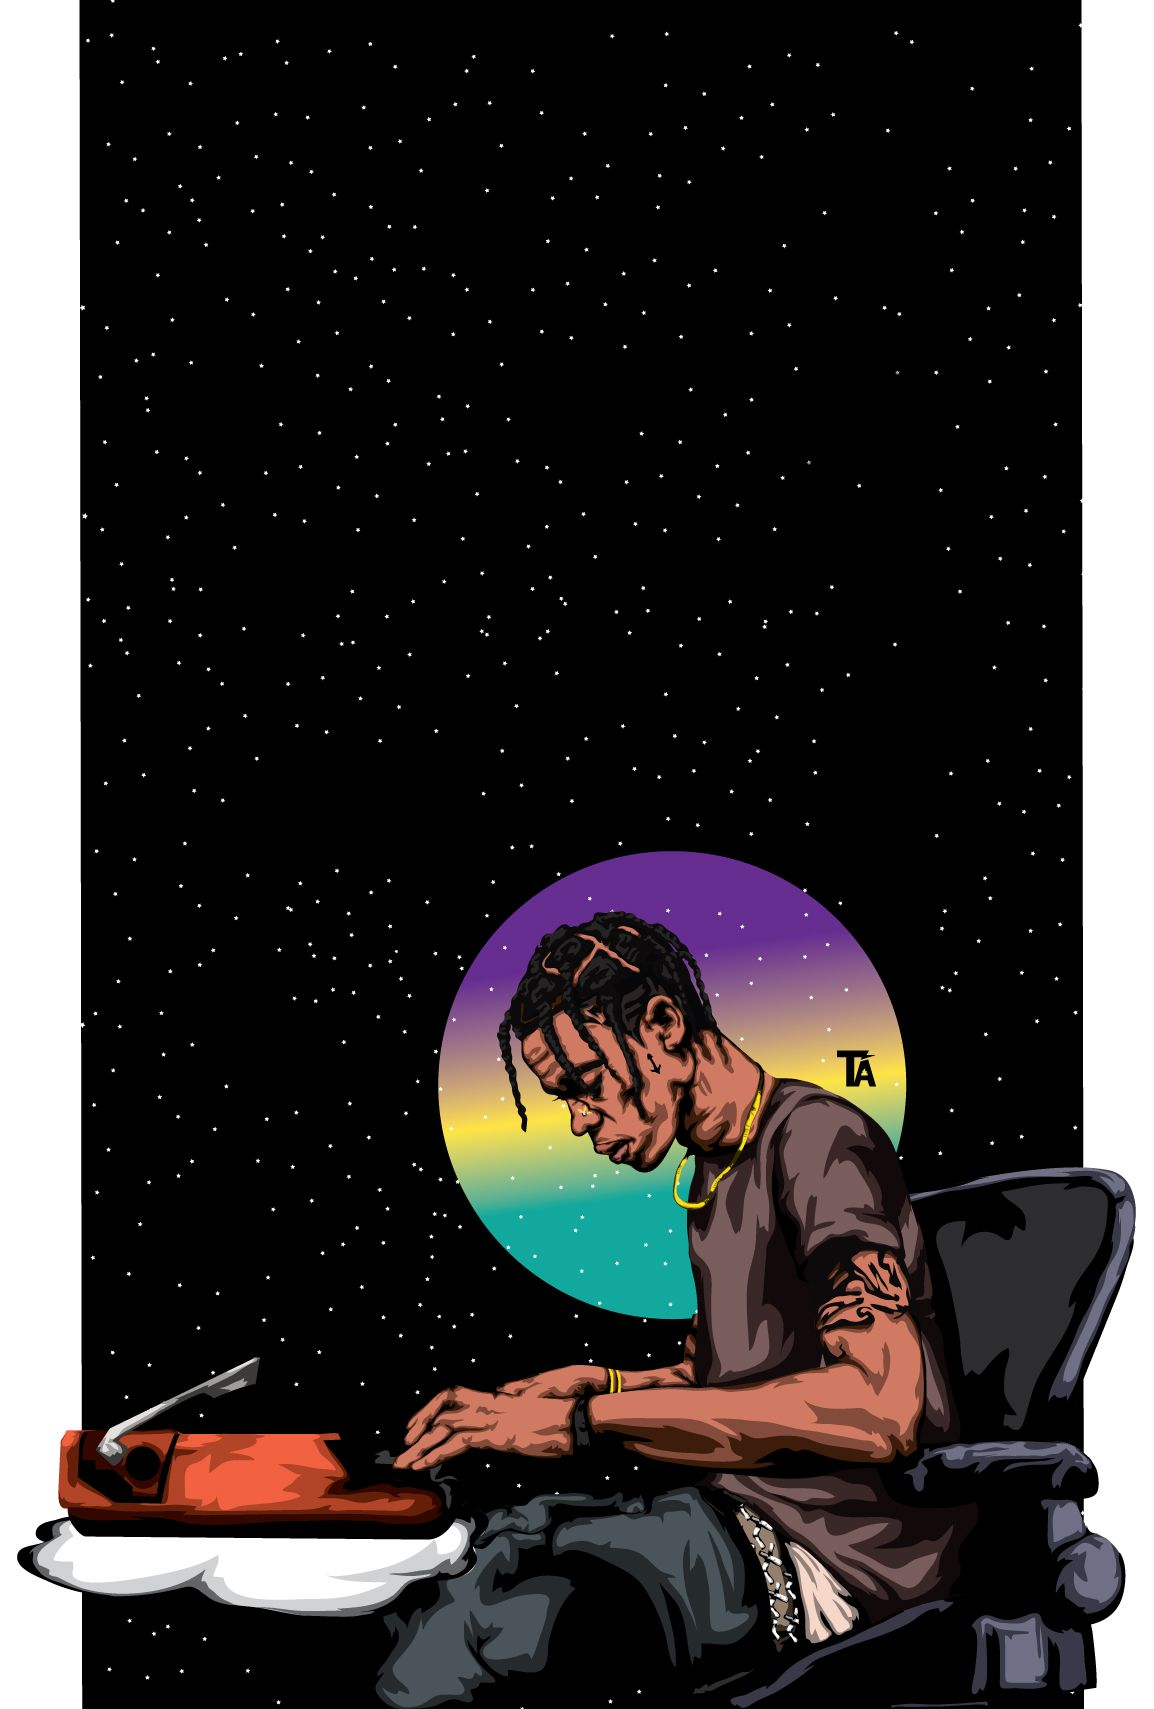 1154x1709 Pin by Adrienne on La Flame | Pinterest | Art, Dope art and Travis ...